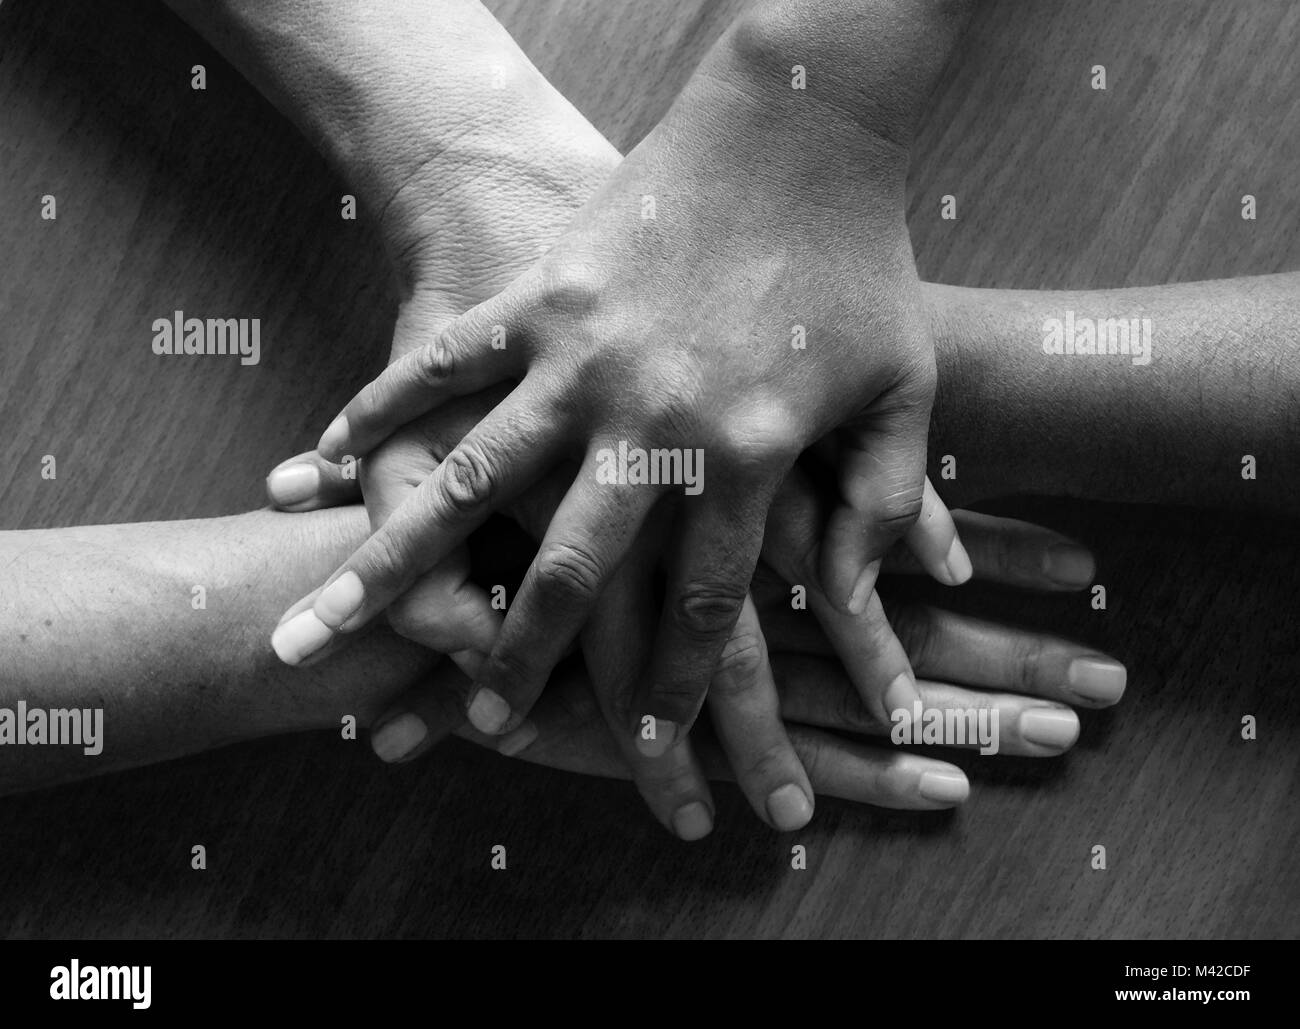 looking down on four fifty year old female hands placed ontop of each other, the top hand and third hand are Asian Stock Photo